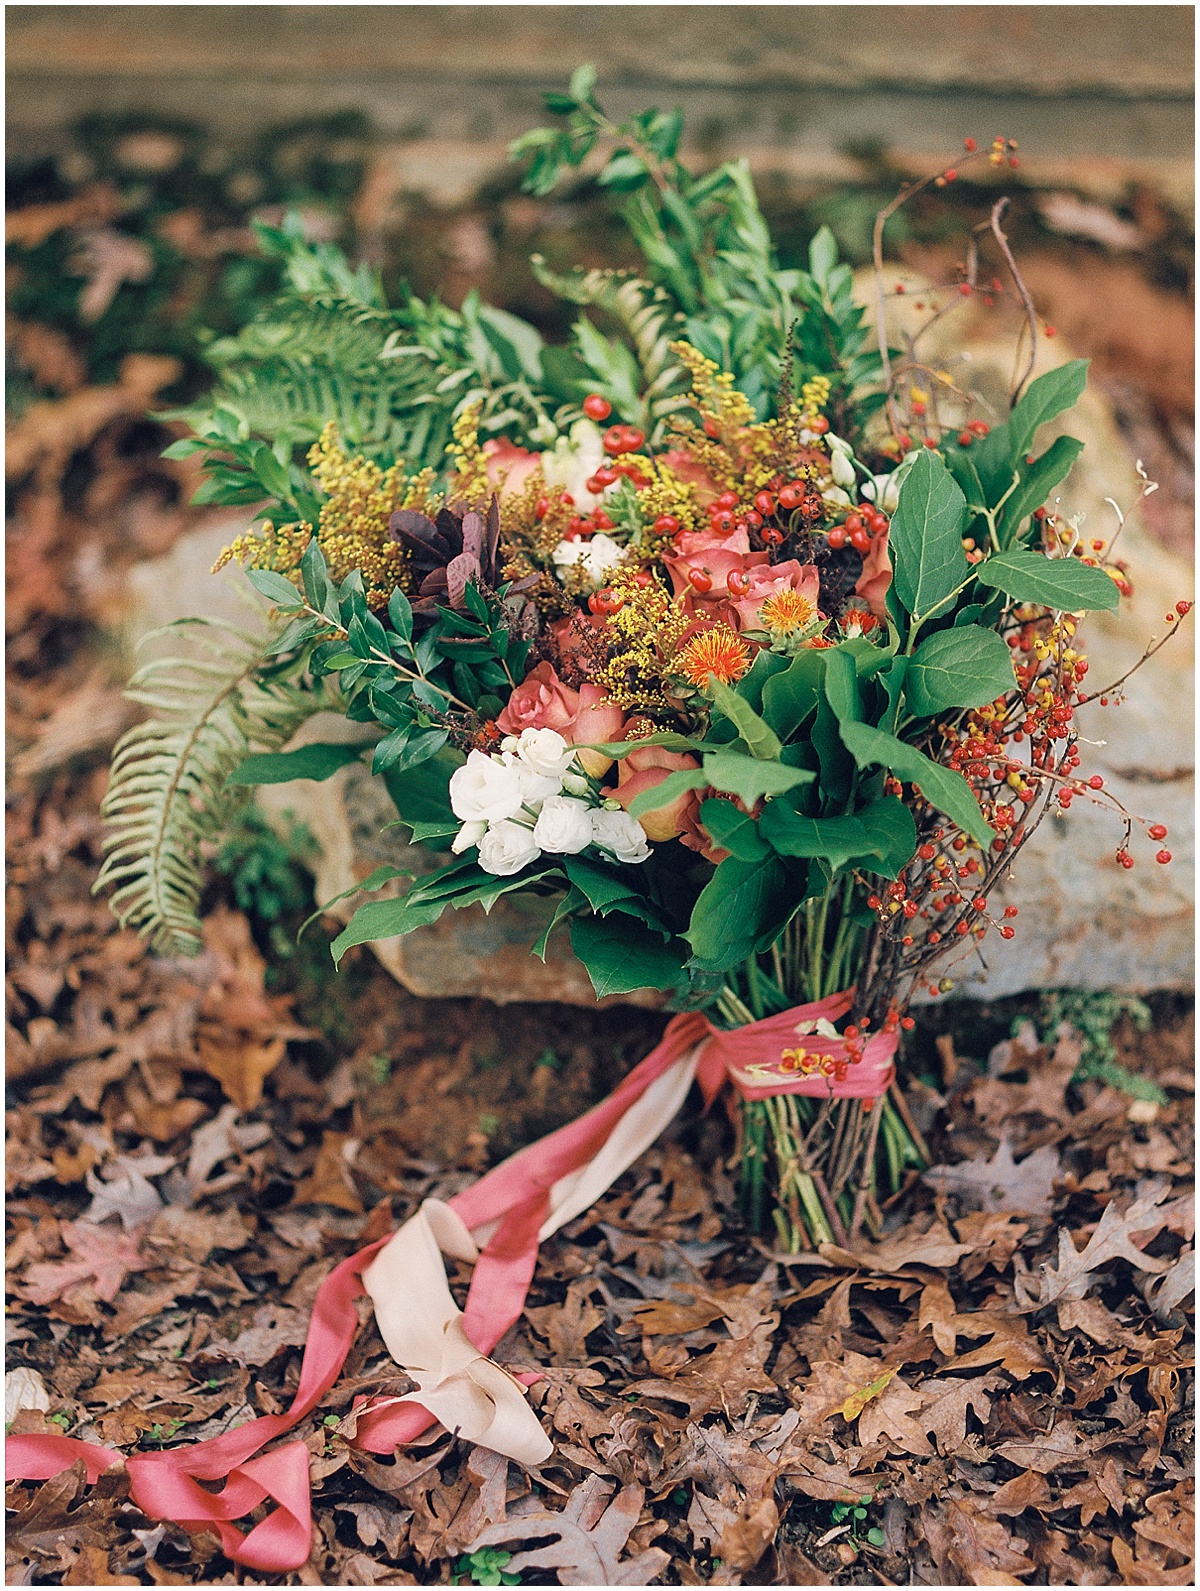 Abigail_Malone_Fall_Wedding_Knoxville_Film_Portra_400_Kodak_Mountain_Views_Abby_Elizabeth-42.jpg